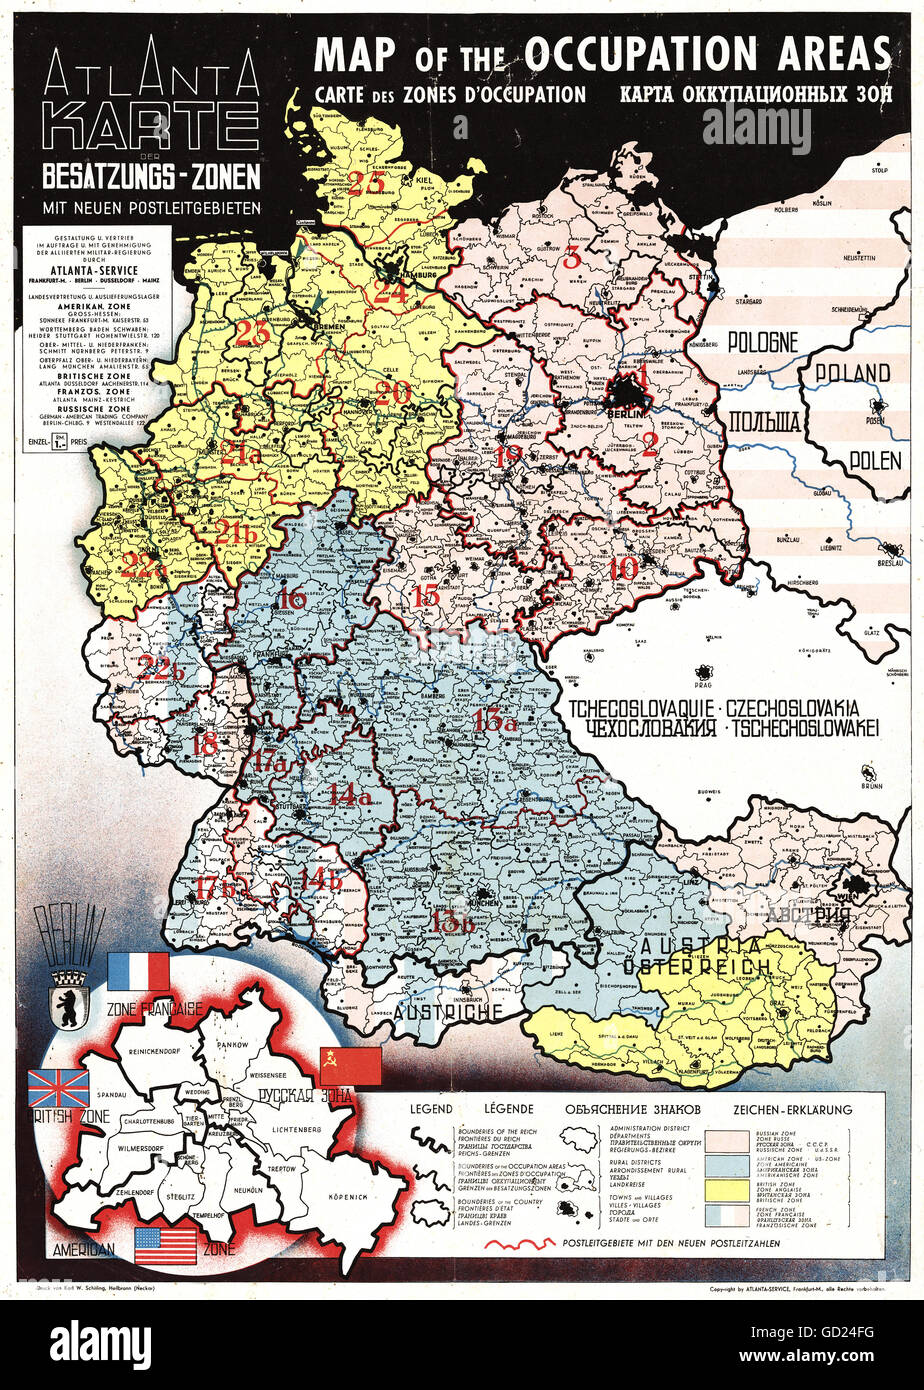 cartography maps germany and austria allied zones of occupation and german postal codes atlantic service frankfurt am main 1945